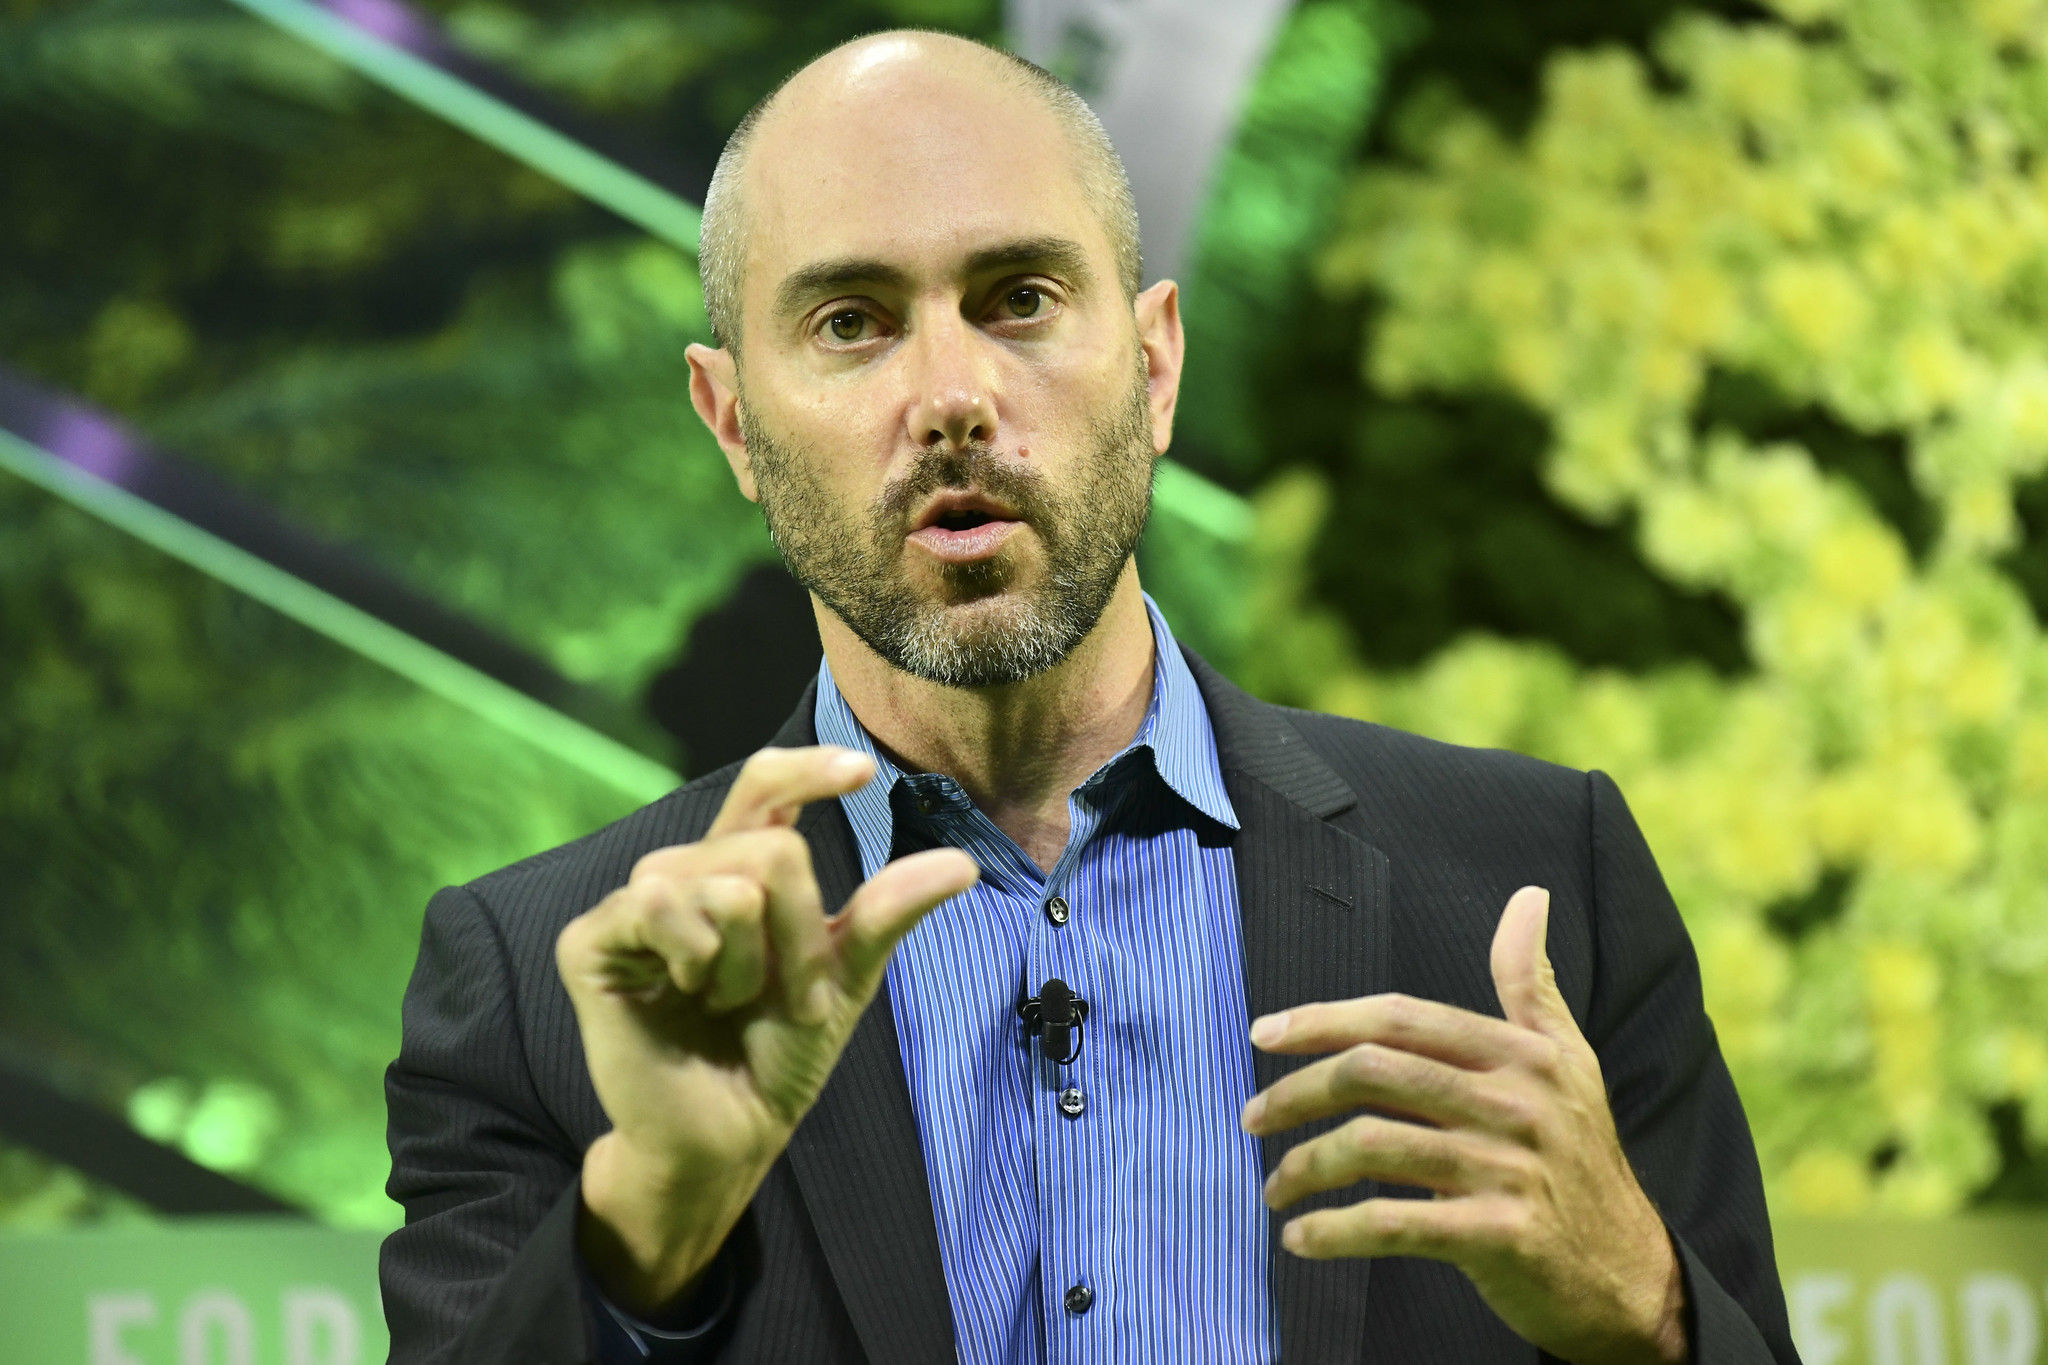 David Rosenberg, CEO of AeroFarms speaks at the Fortune Global Sustainability Forum on Thursday, September 5th in Yunnan, China.